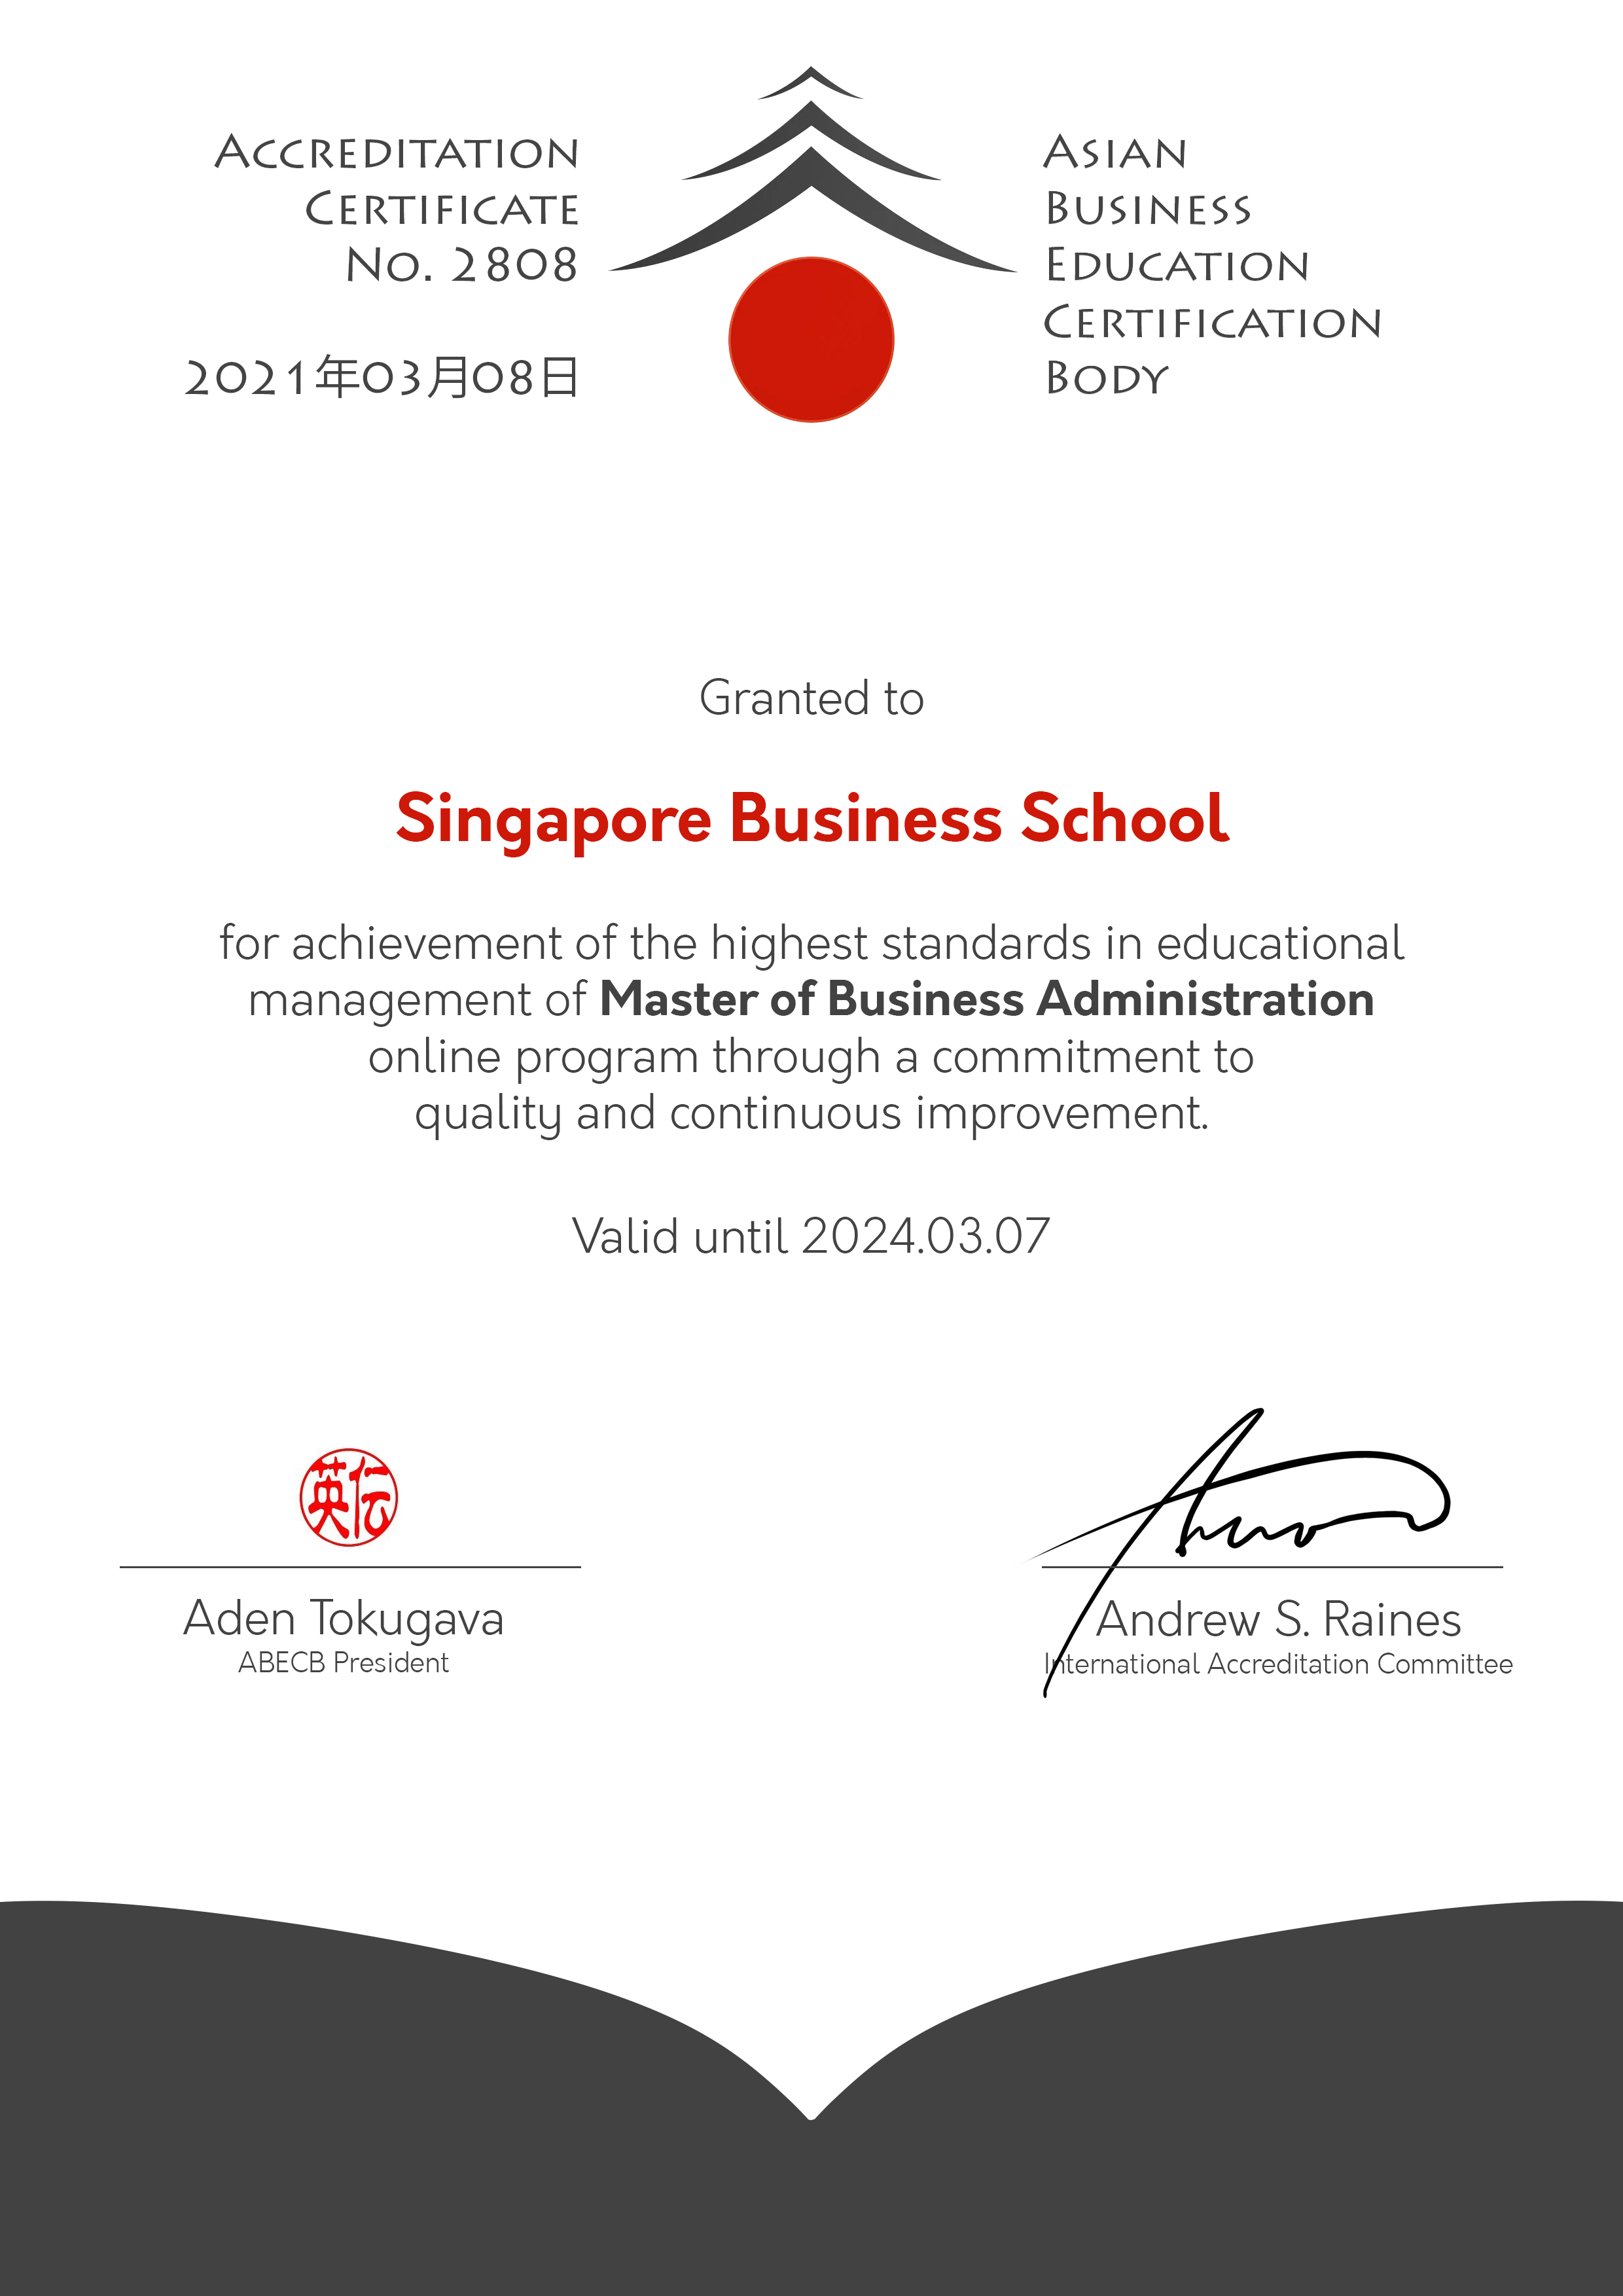 Asian Business Education Certification Body